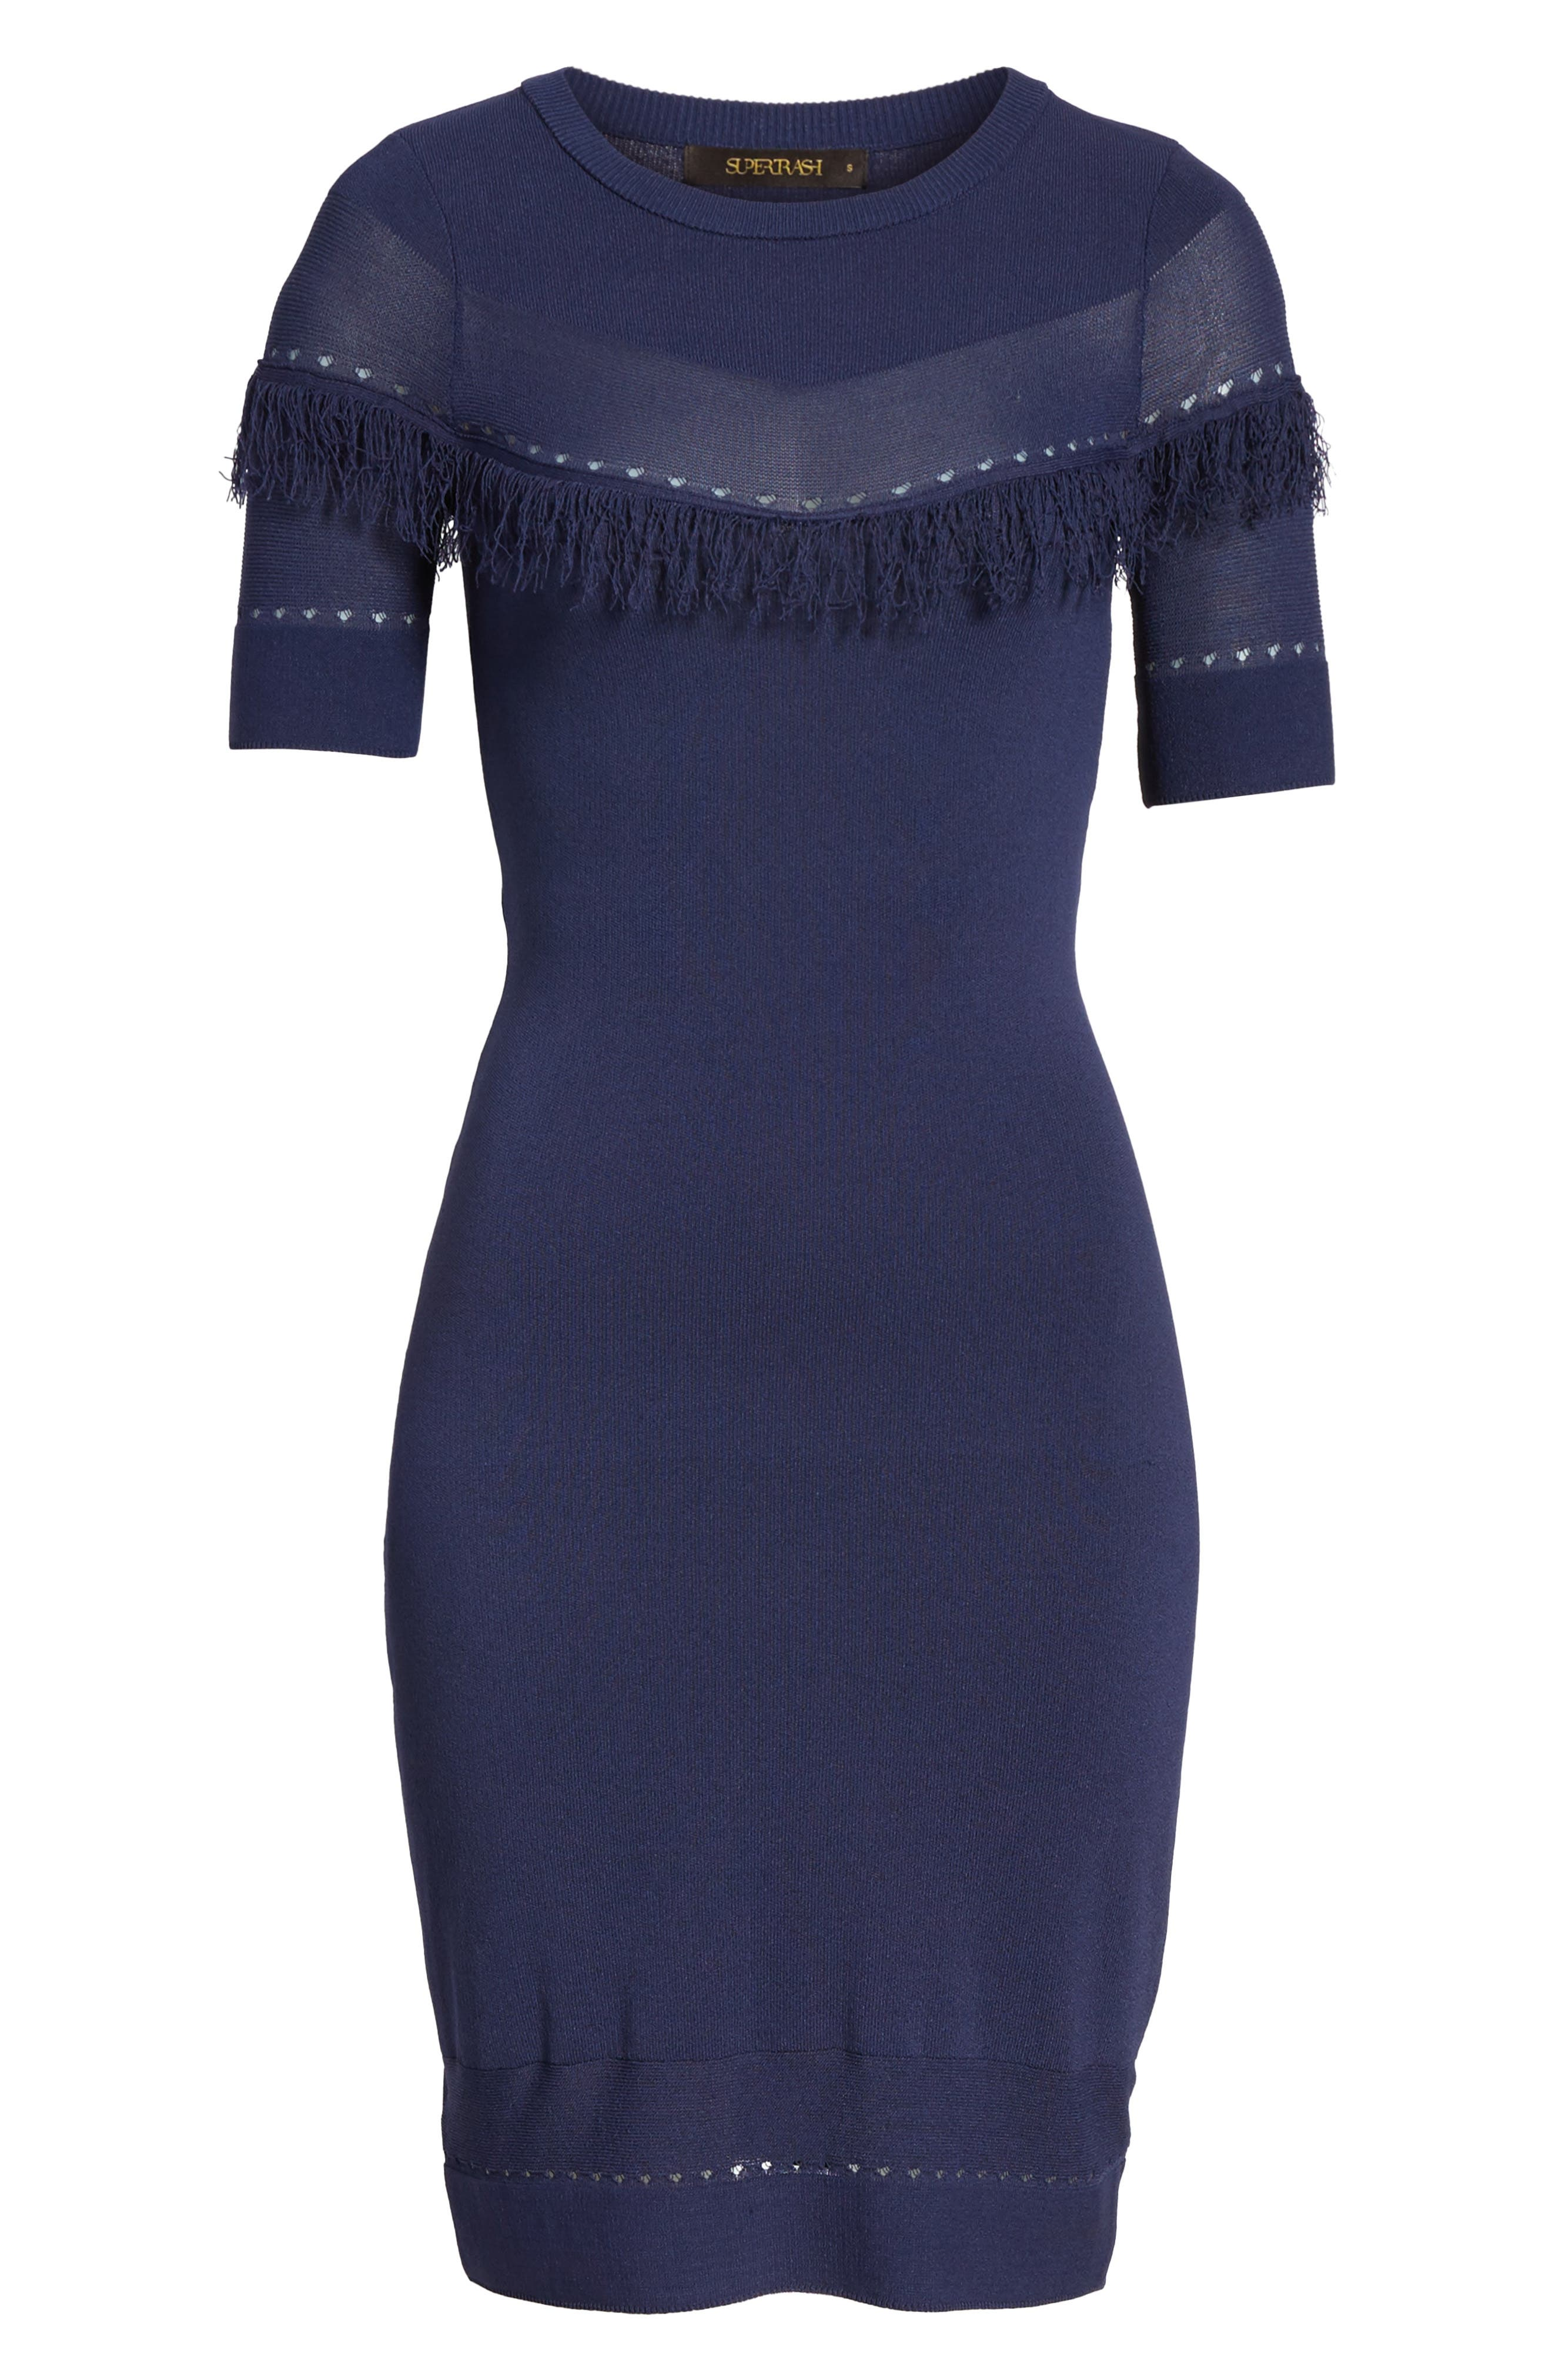 Dash Sheath Dress,                             Alternate thumbnail 6, color,                             Evening Blue